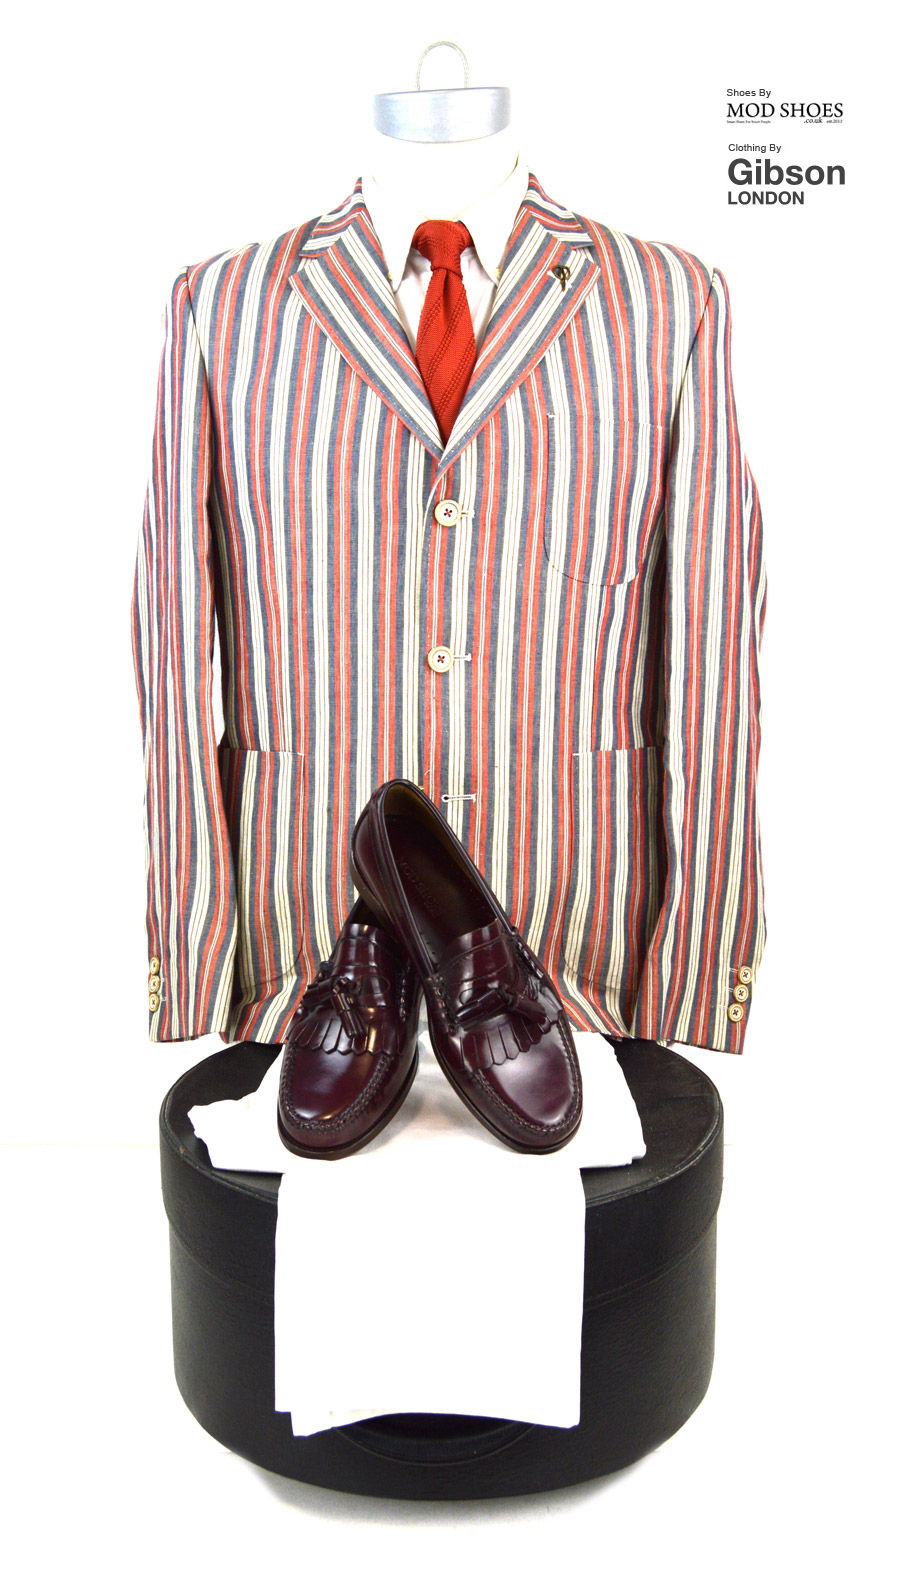 modshoes-oxblood-dukes-with-gibson-clothing-boating-balzer